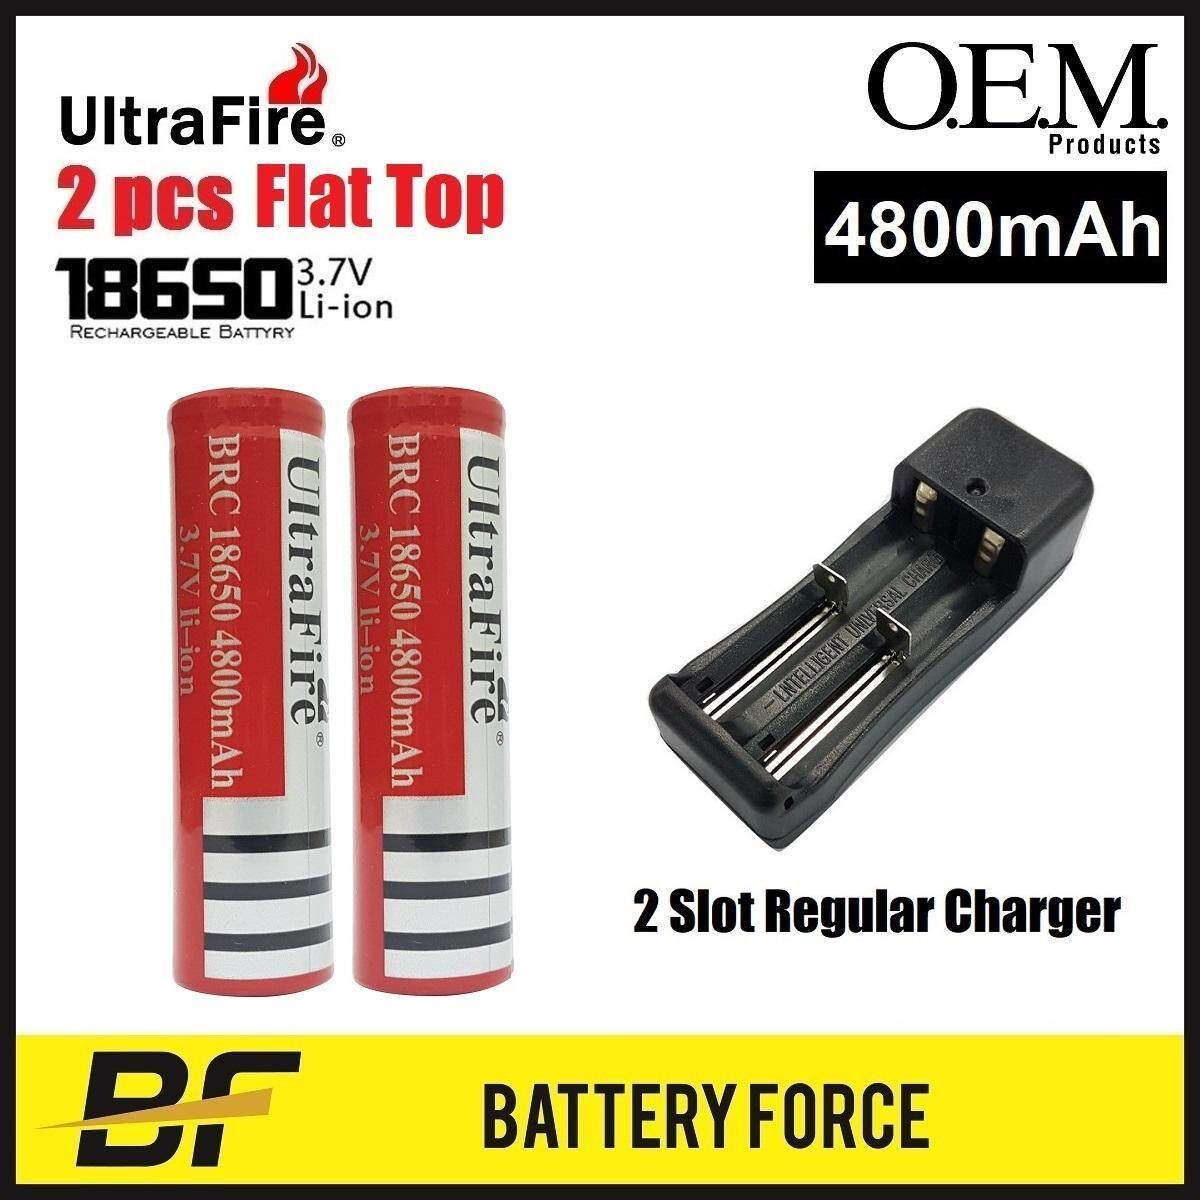 3.7V 18650 UltraFire 4800mAH Flat Top Rechargeable Lithium Ion Battery BRC Vape Battery W 2 Slot Charger